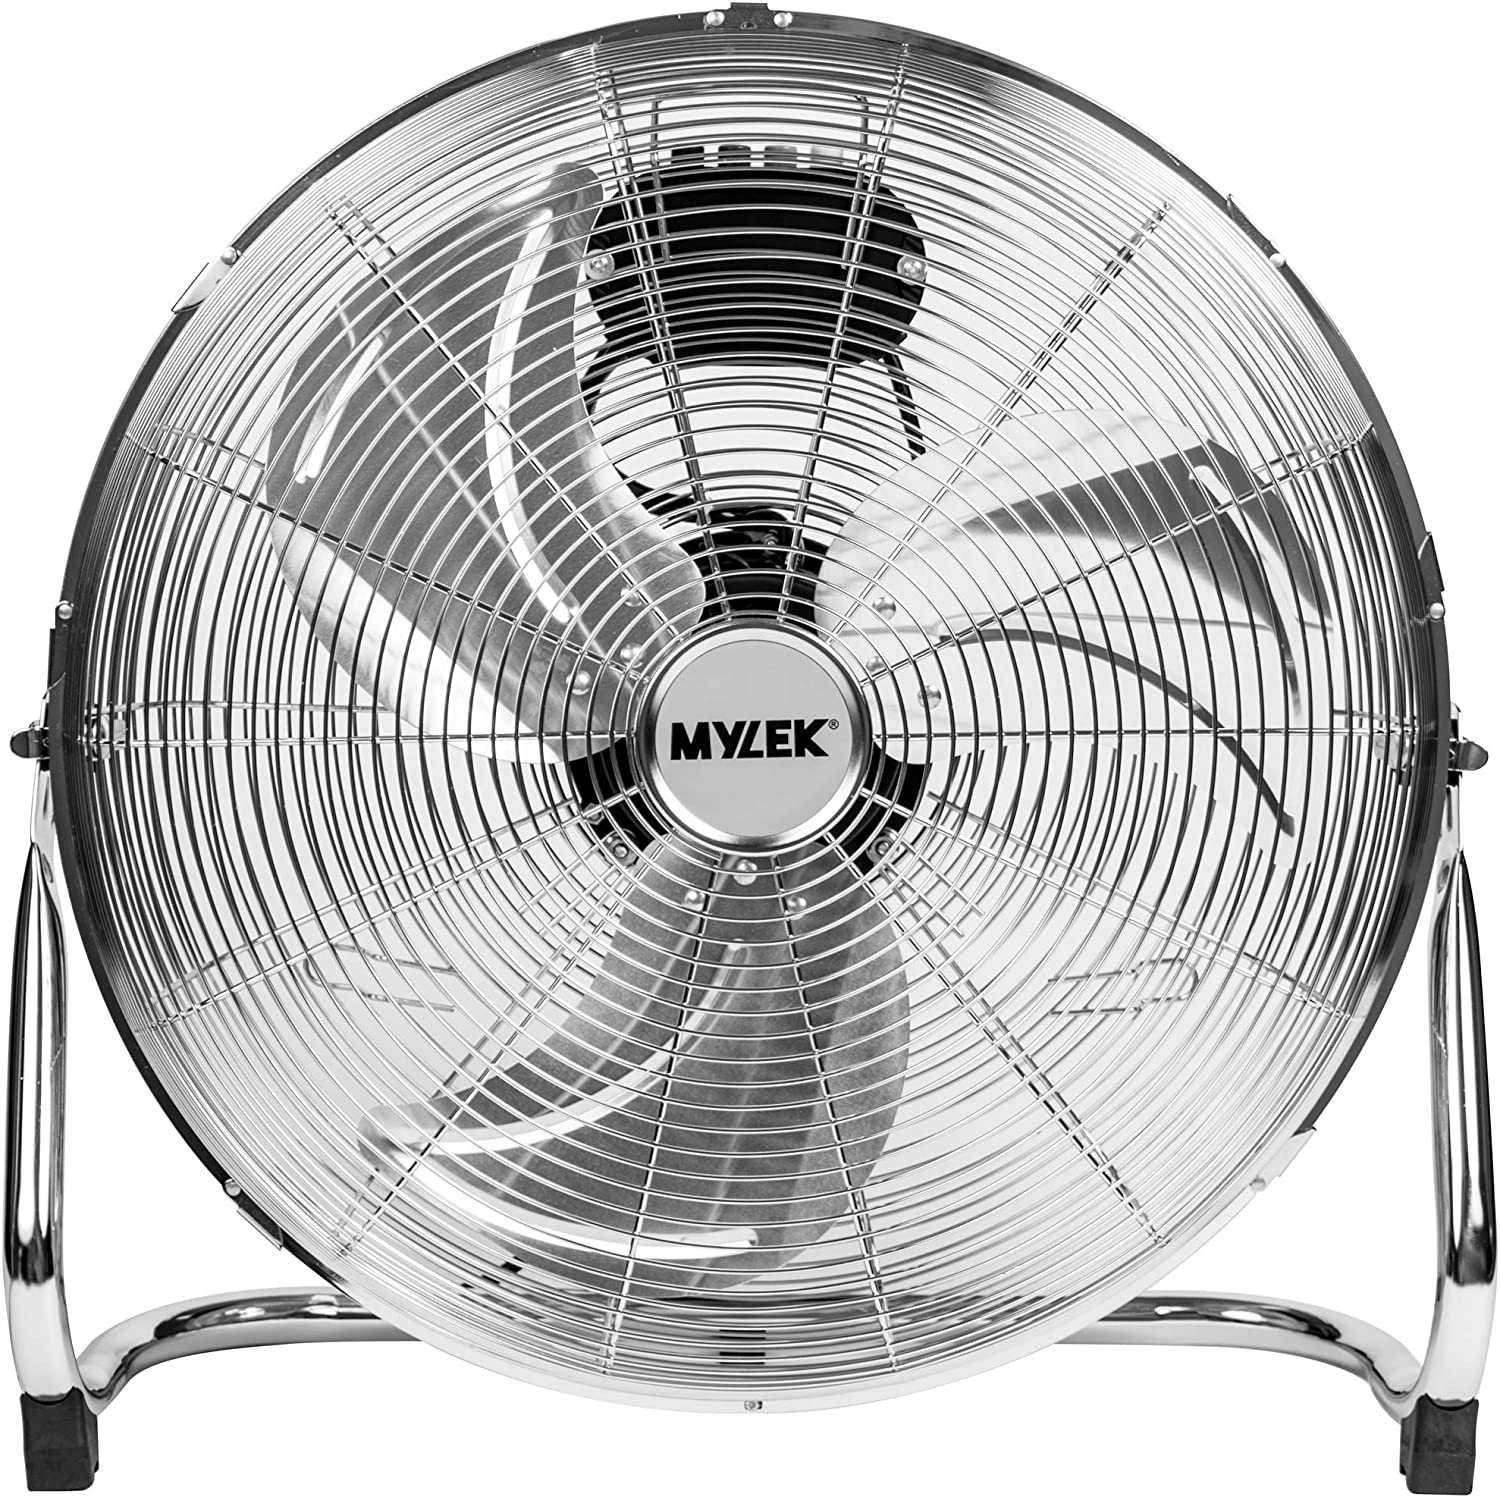 High Velocity Floor Fan 3-Speed 18-Inch Adjustable Tilt Head Powerful Air Volume